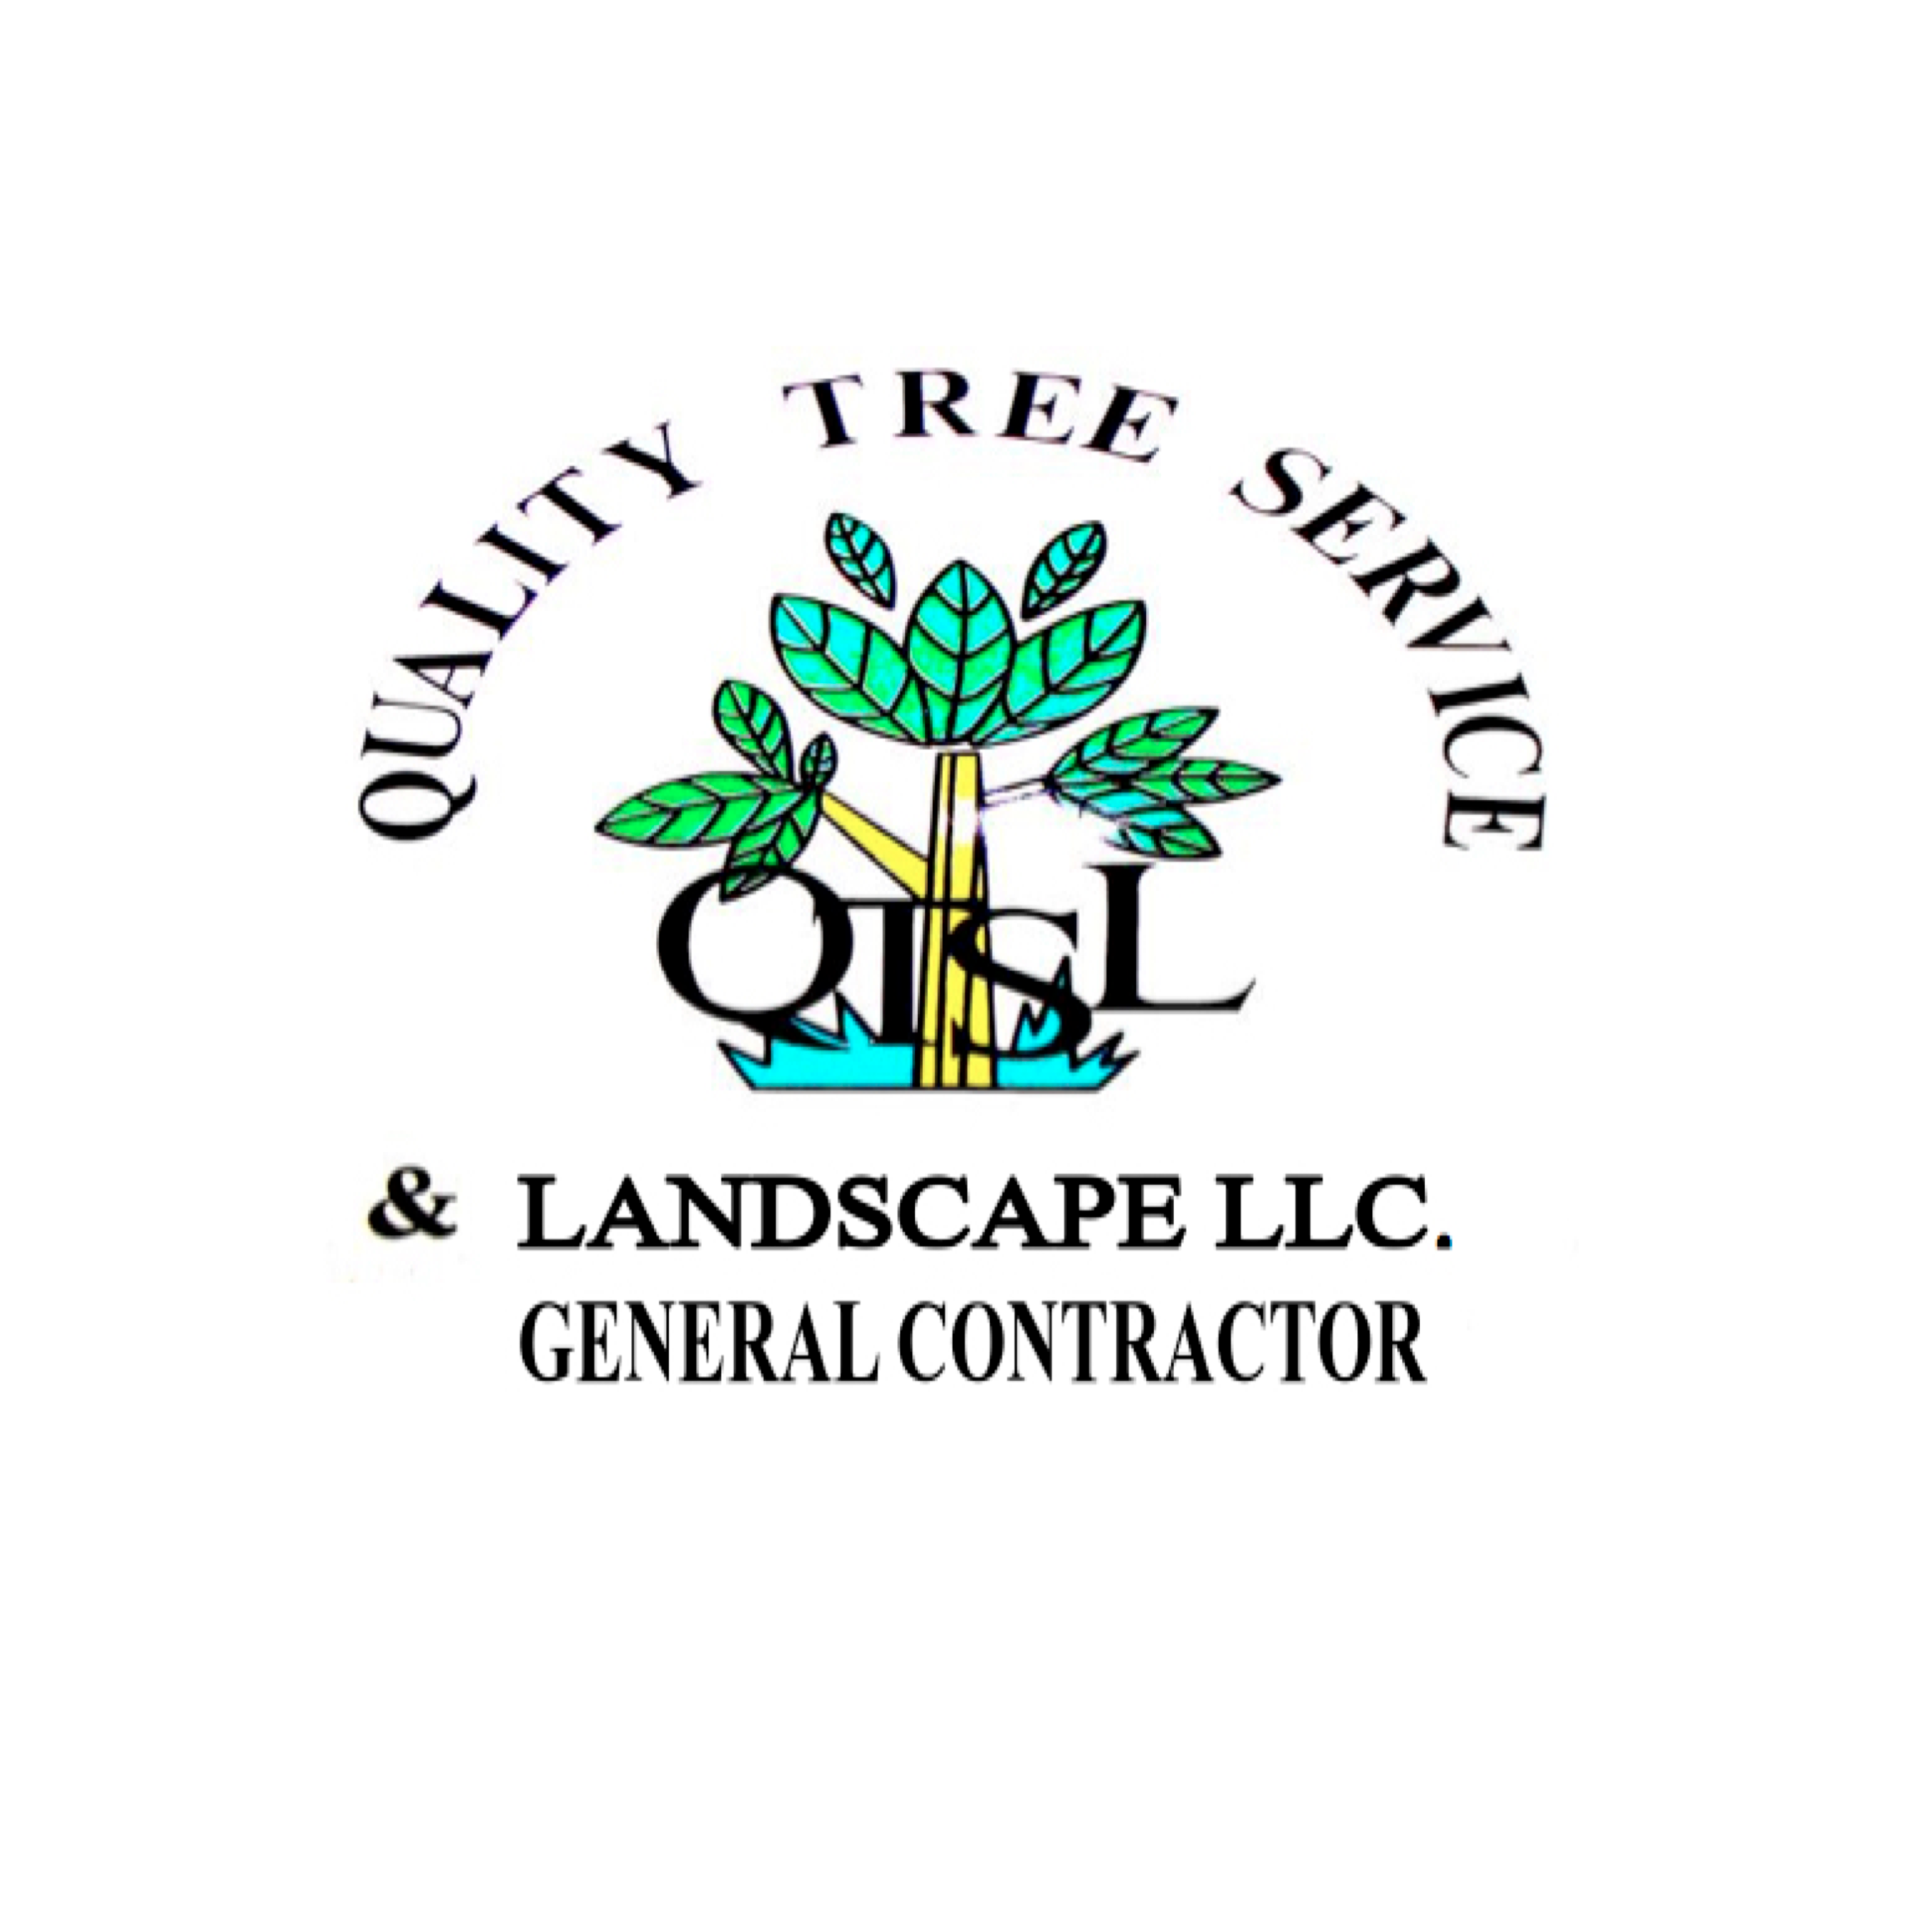 Quality Tree Service & Landscape Maintenance LLC